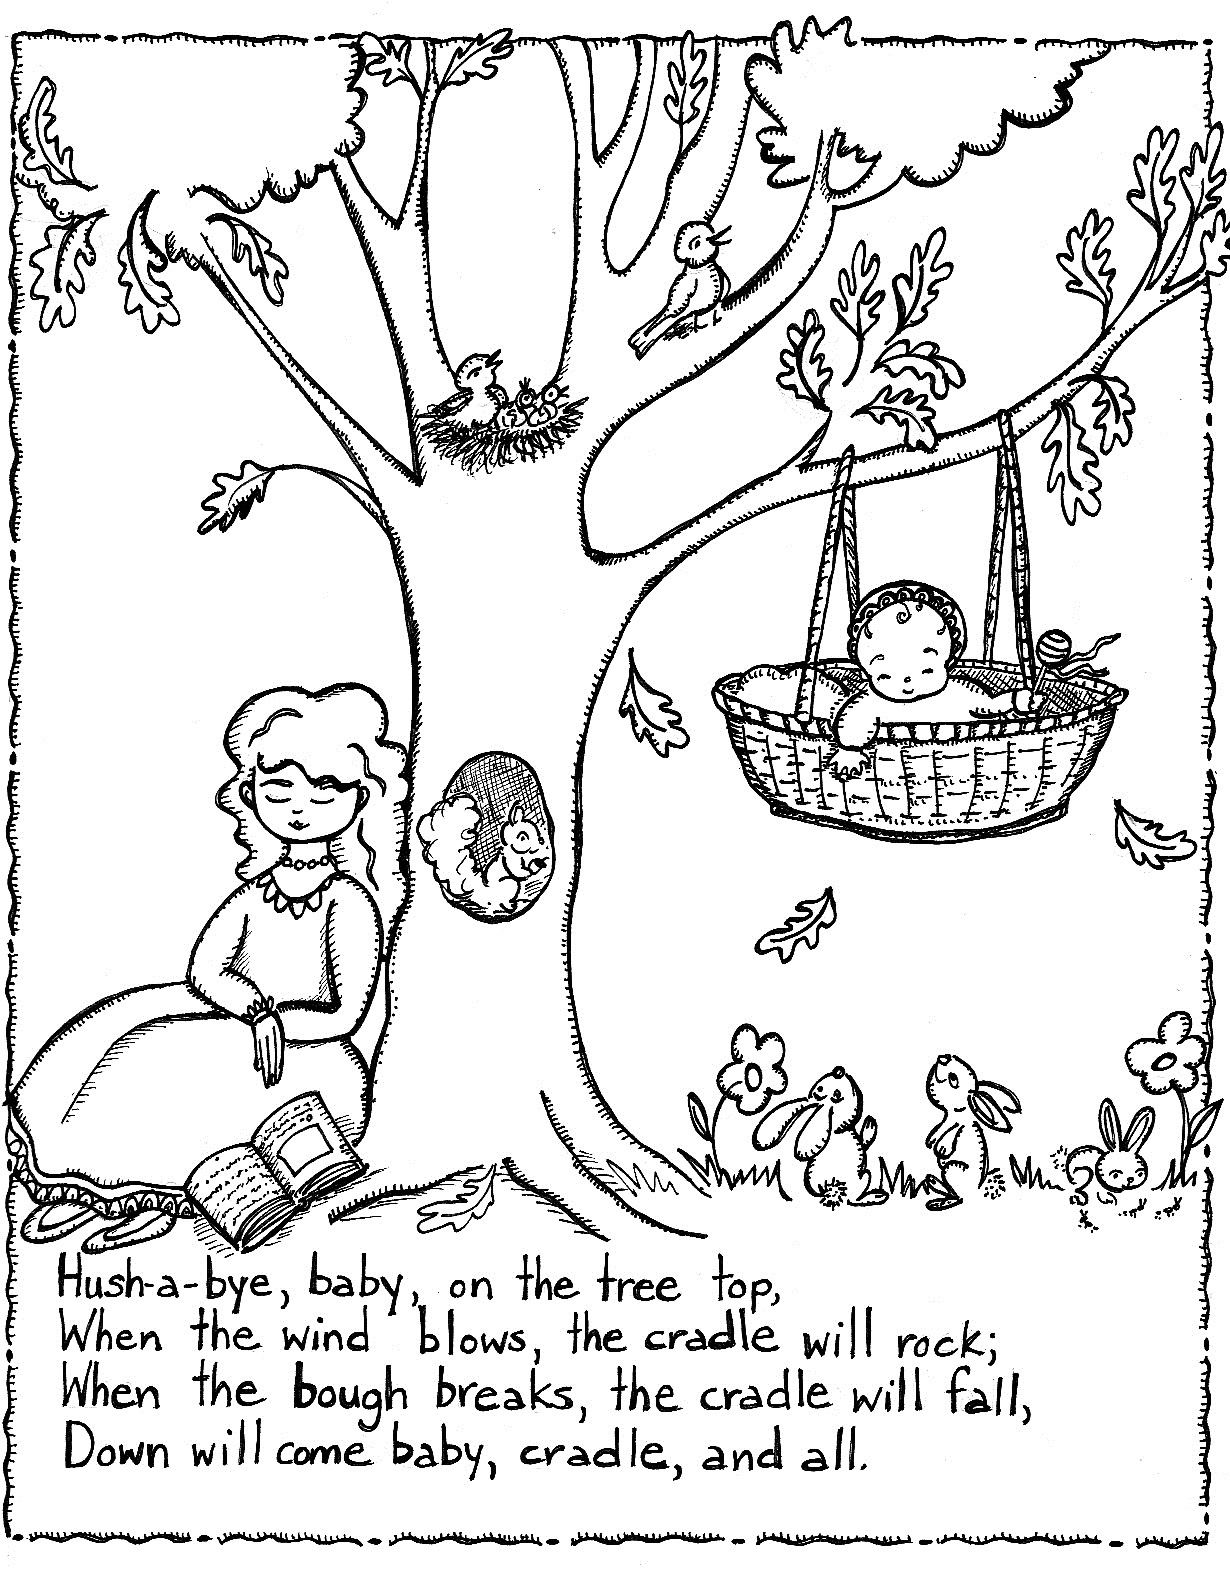 Free Printable Nursery Rhymes Coloring Pages For Kids - Free Printable Nursery Rhyme Coloring Pages